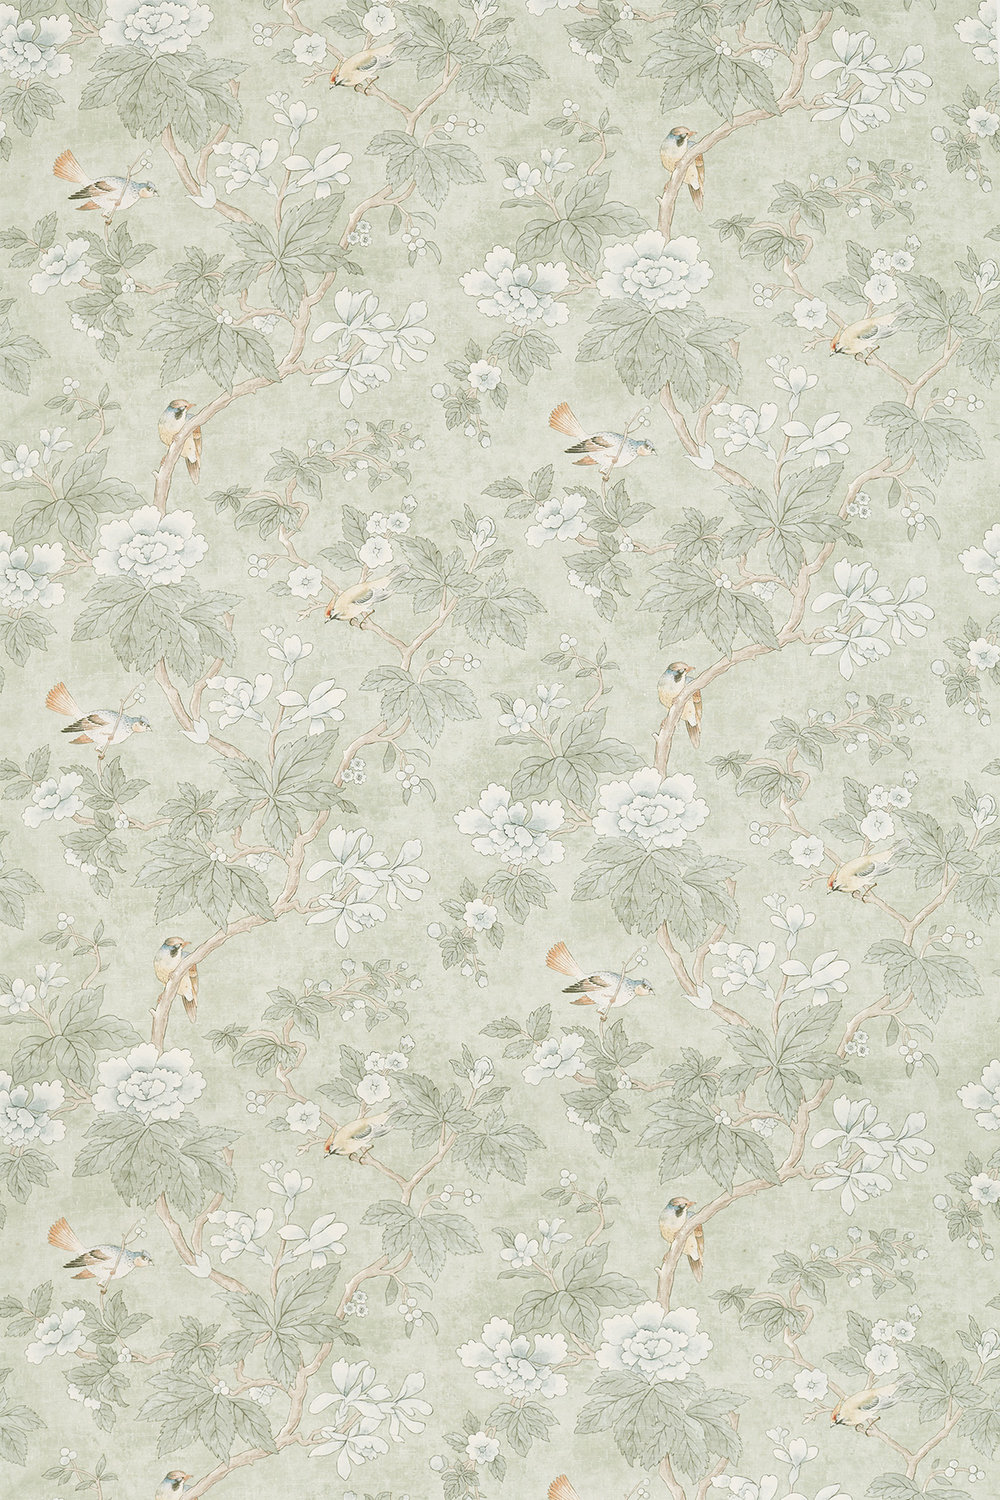 Sanderson Chiswick Grove Sage Fabric - Product code: 226370